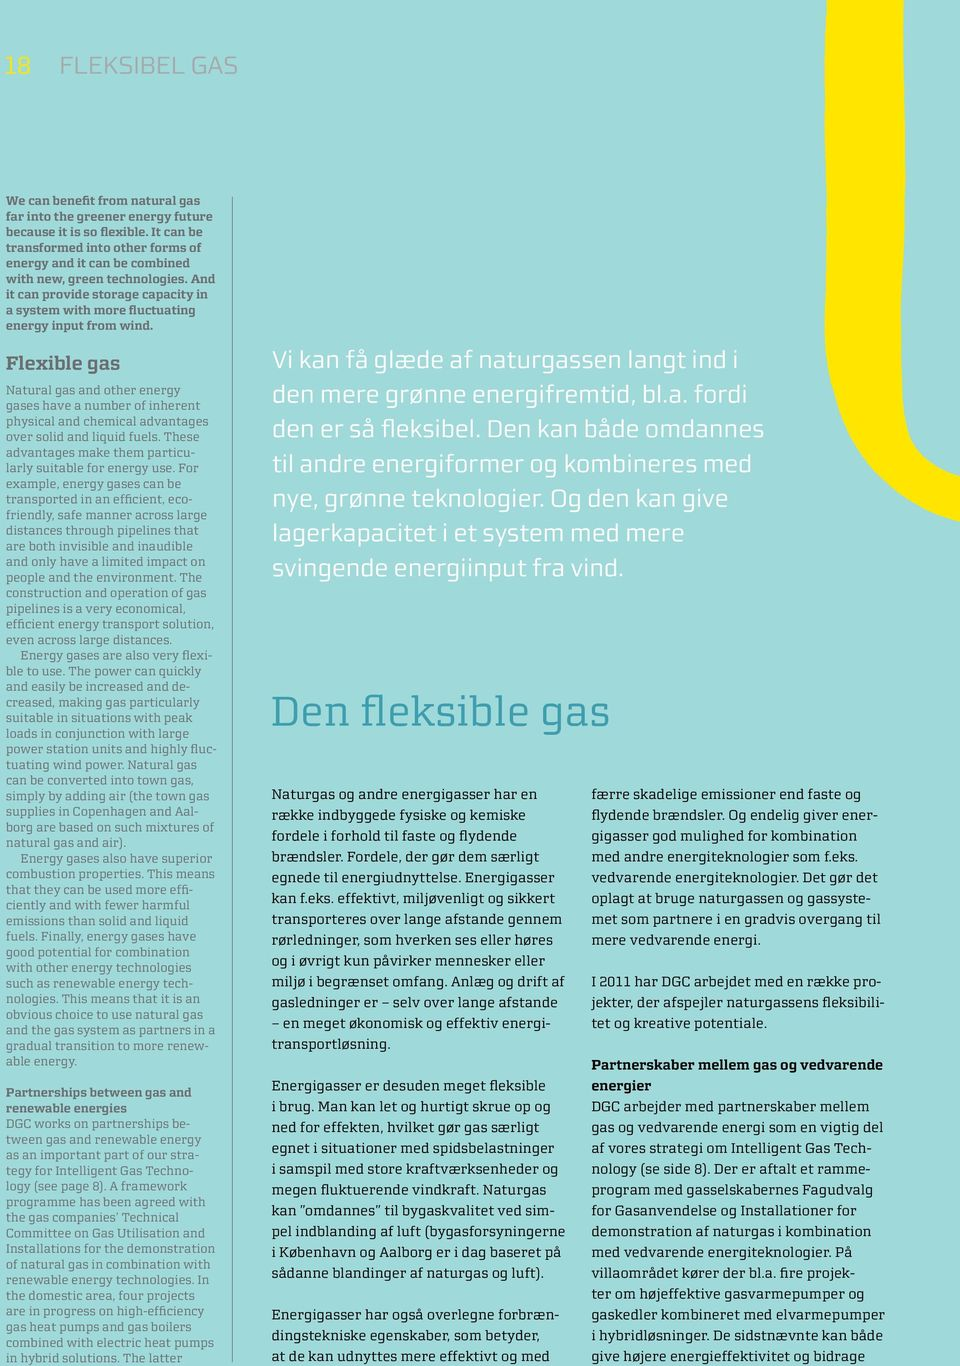 Flexible gas Natural gas and other energy gases have a number of inherent physical and chemical advantages over solid and liquid fuels. These advantages make them particularly suitable for energy use.